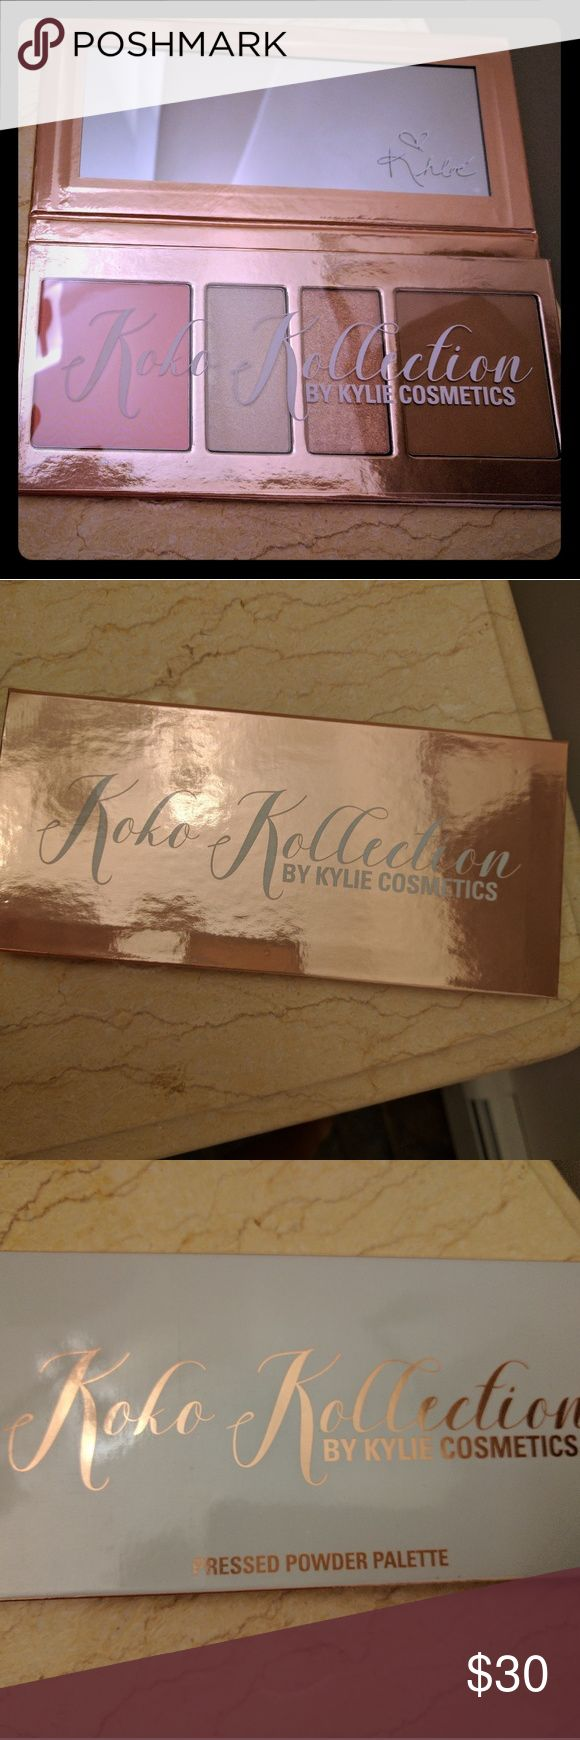 """Koko Kollection Palette by Kylie Cosmetics New in Box. Authentic. Unopened, unswatched. Includes """"rodeo drive"""" blush, """"troop beverly hills"""" and """"90210"""" highlighters and """"hollywood blvd"""" bronzer. Add this beautiful pressed powder palette to your collection! No trades. Kylie Cosmetics Makeup"""